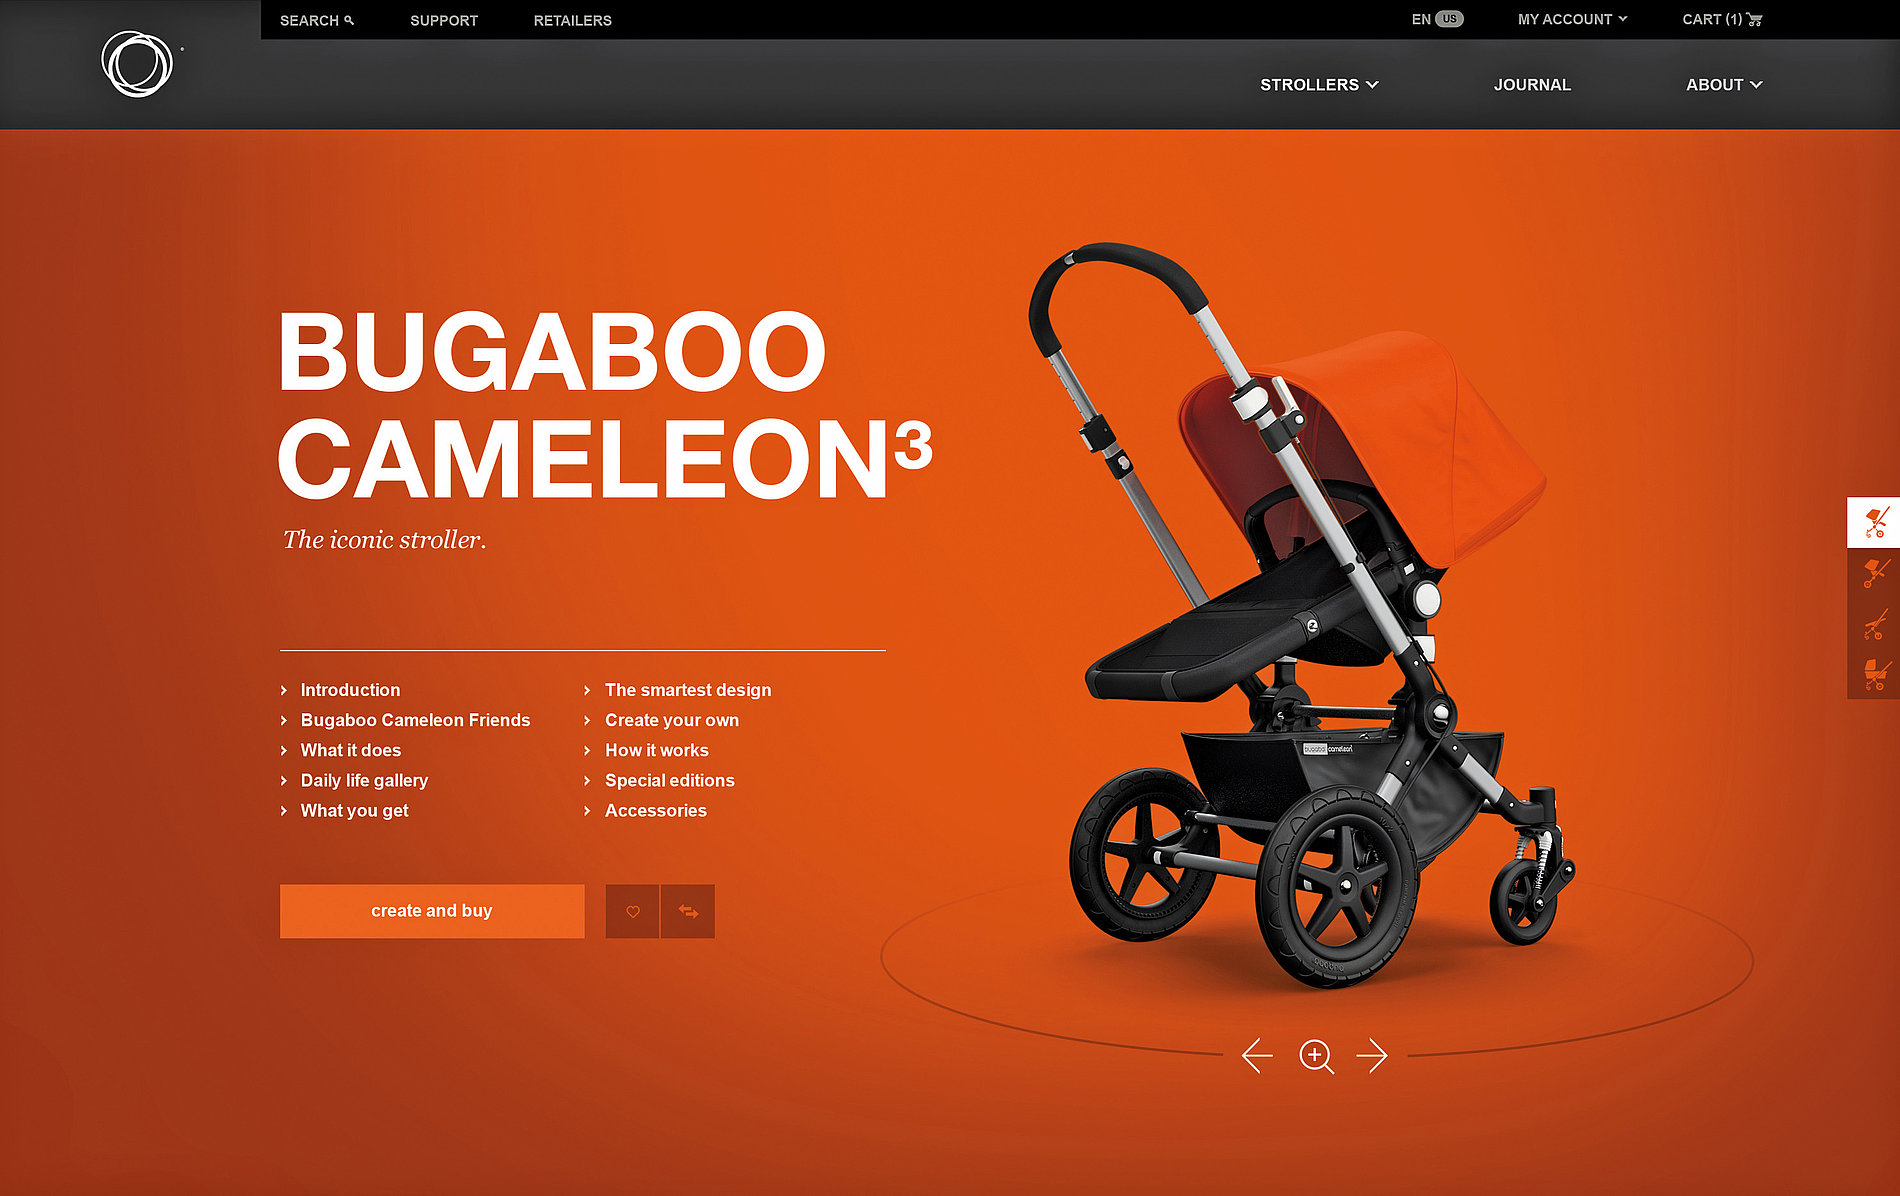 Bugaboo.com | Red Dot Design Award